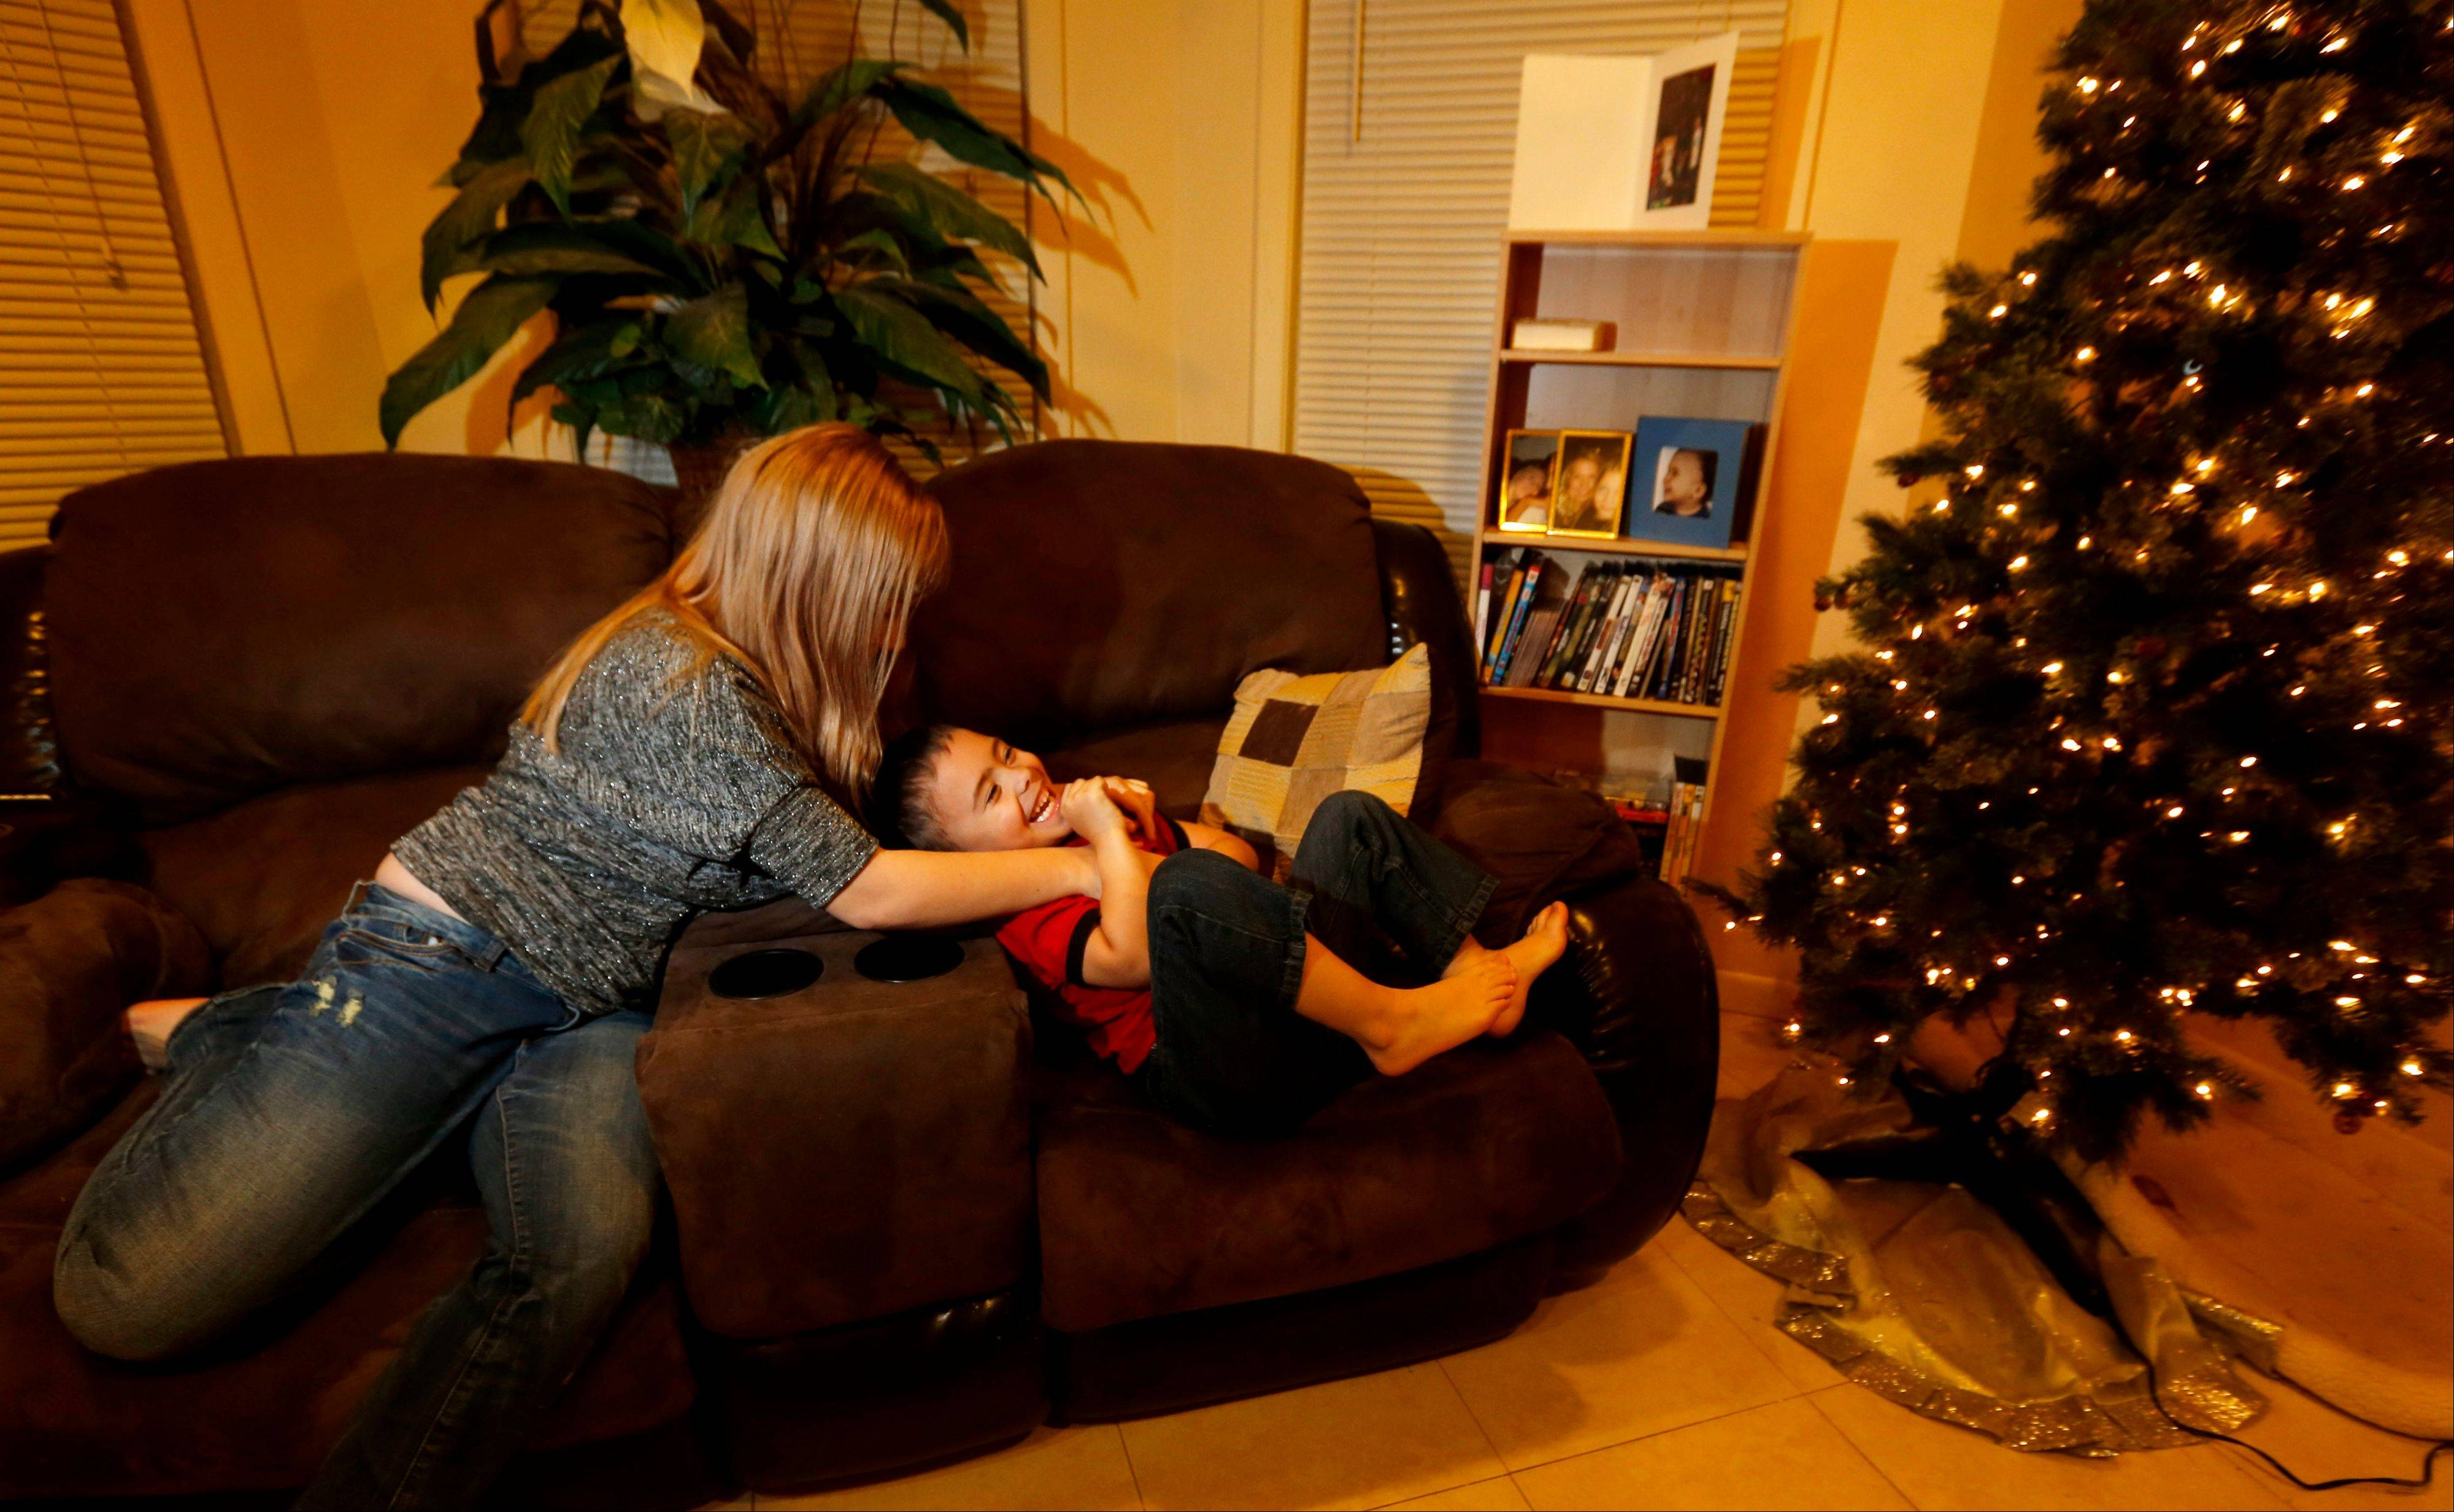 McKenna Pope, 13, left, plays with her brother Gavyn Boscio, 4, in their home Thursday in Garfield, N.J.